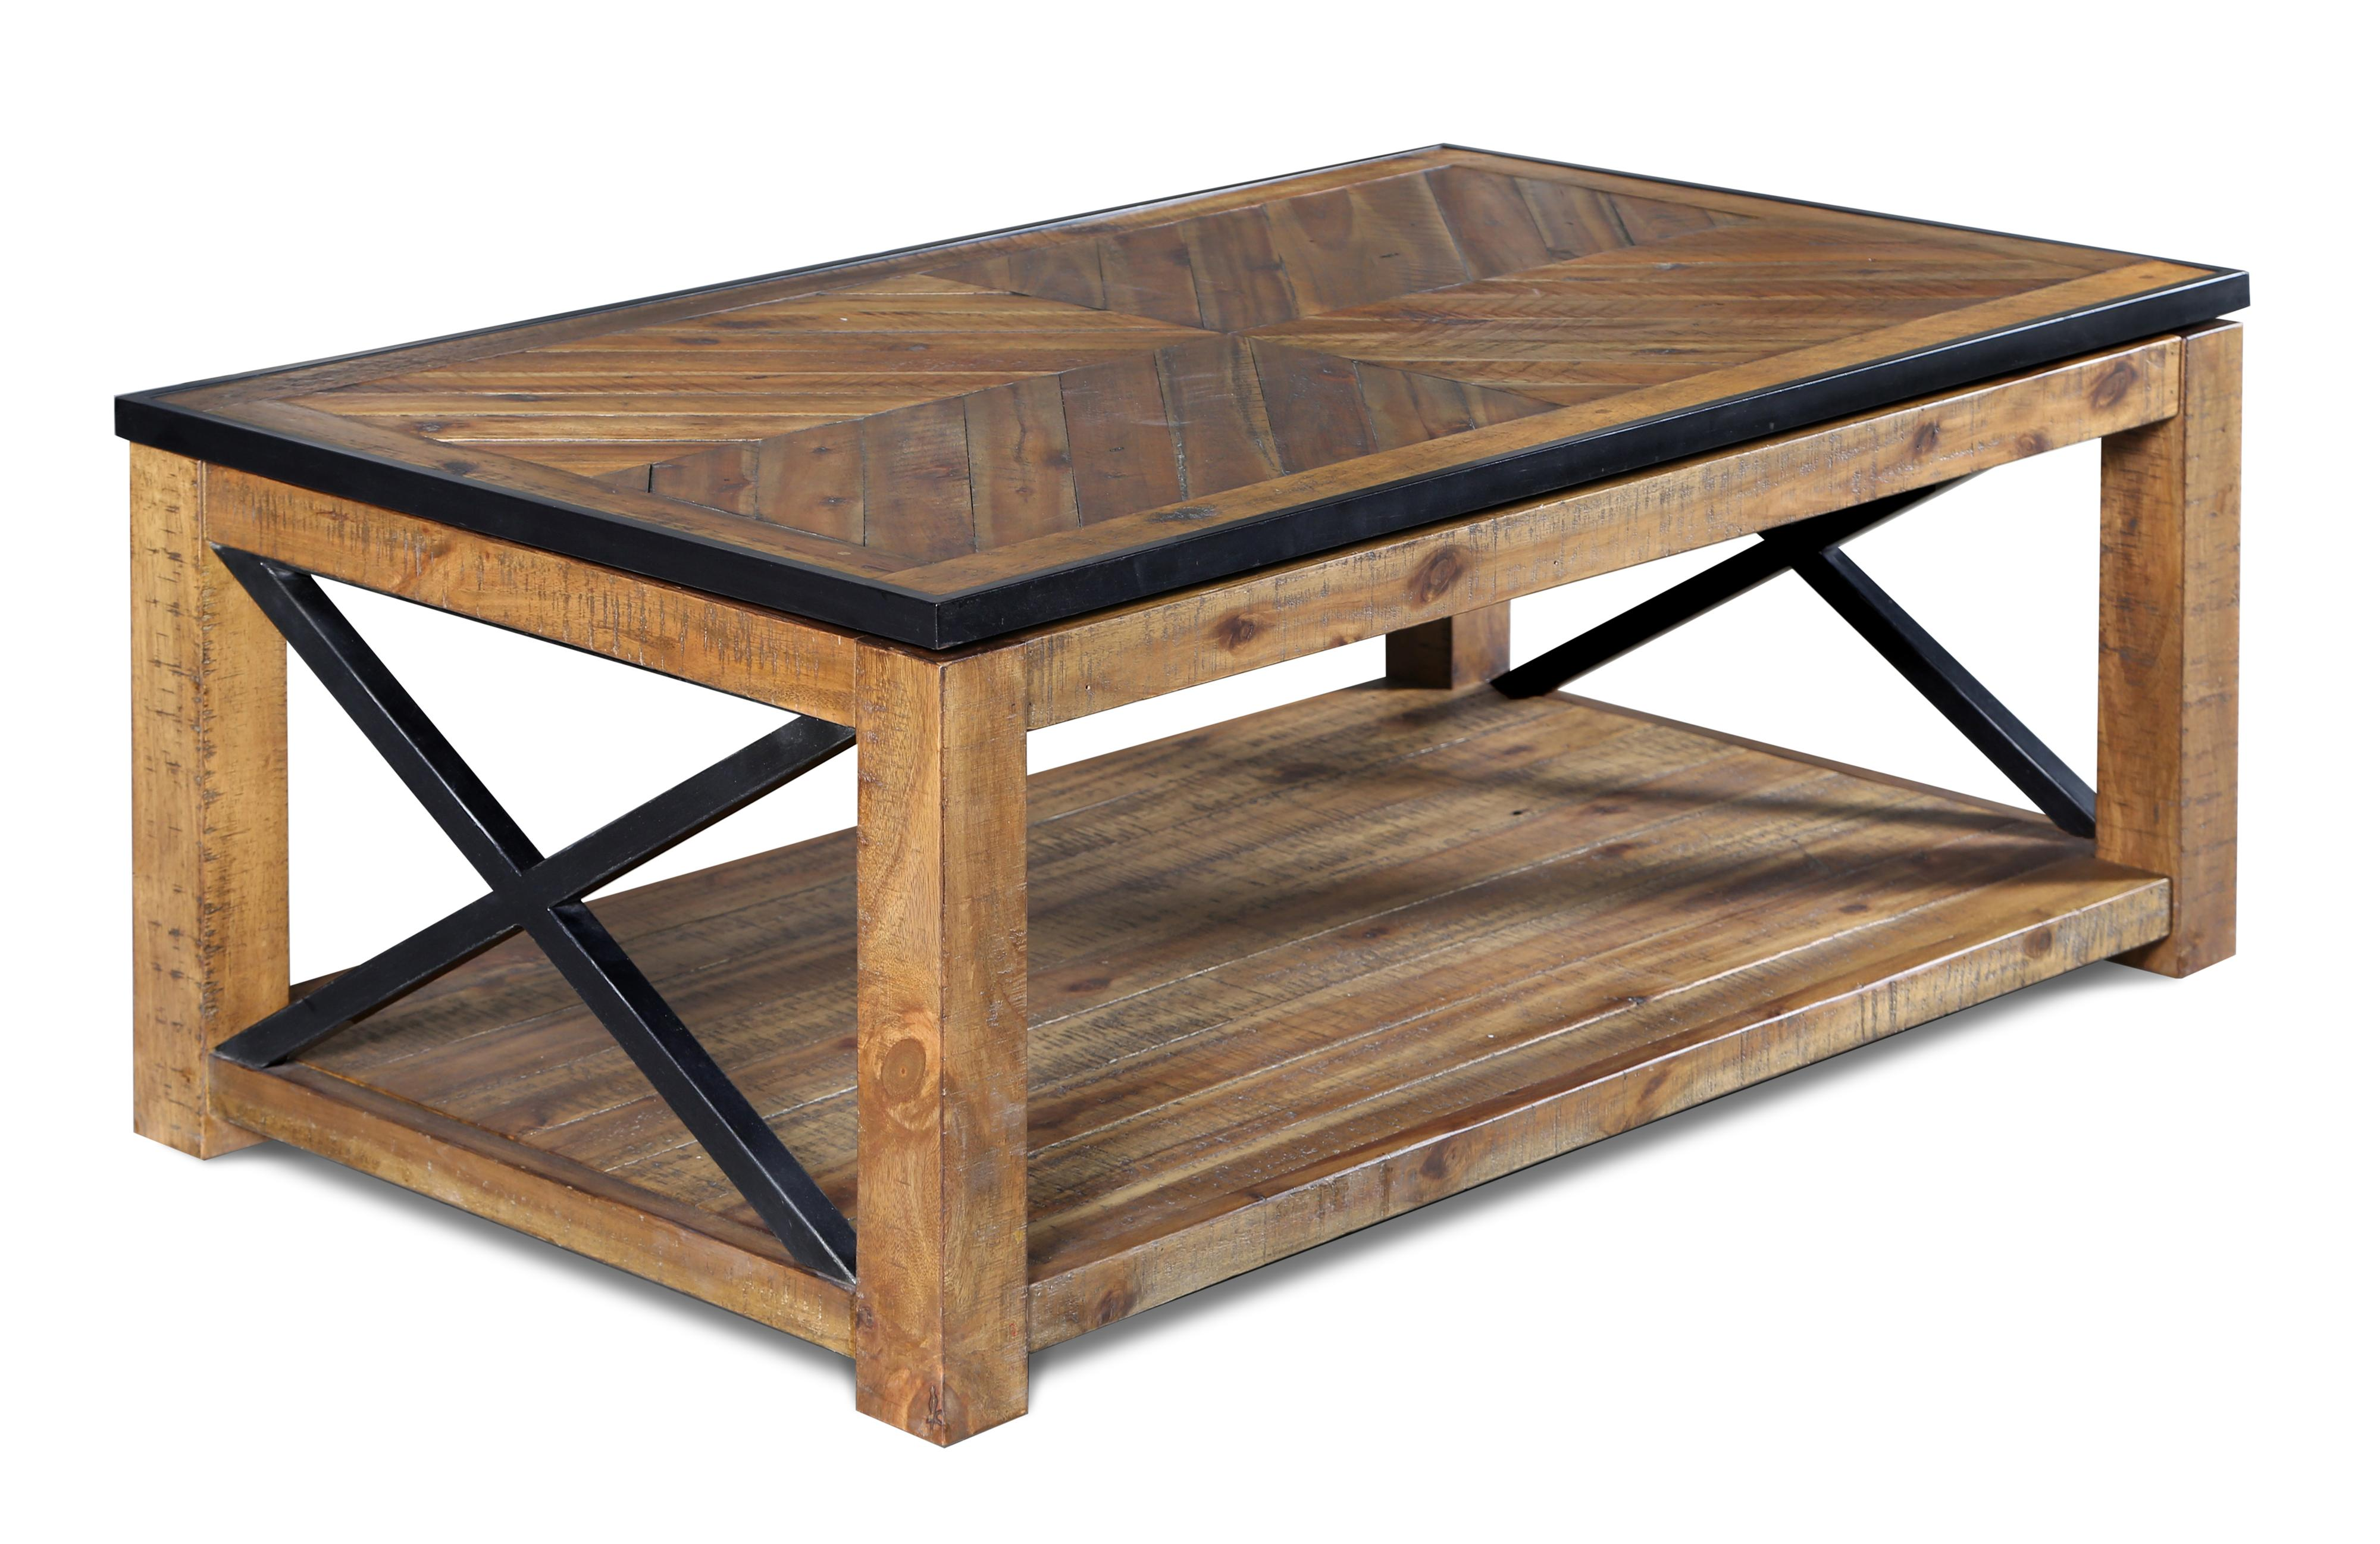 Penderton Rectangular Lift-top  Cocktail Table by Magnussen Home at Bullard Furniture